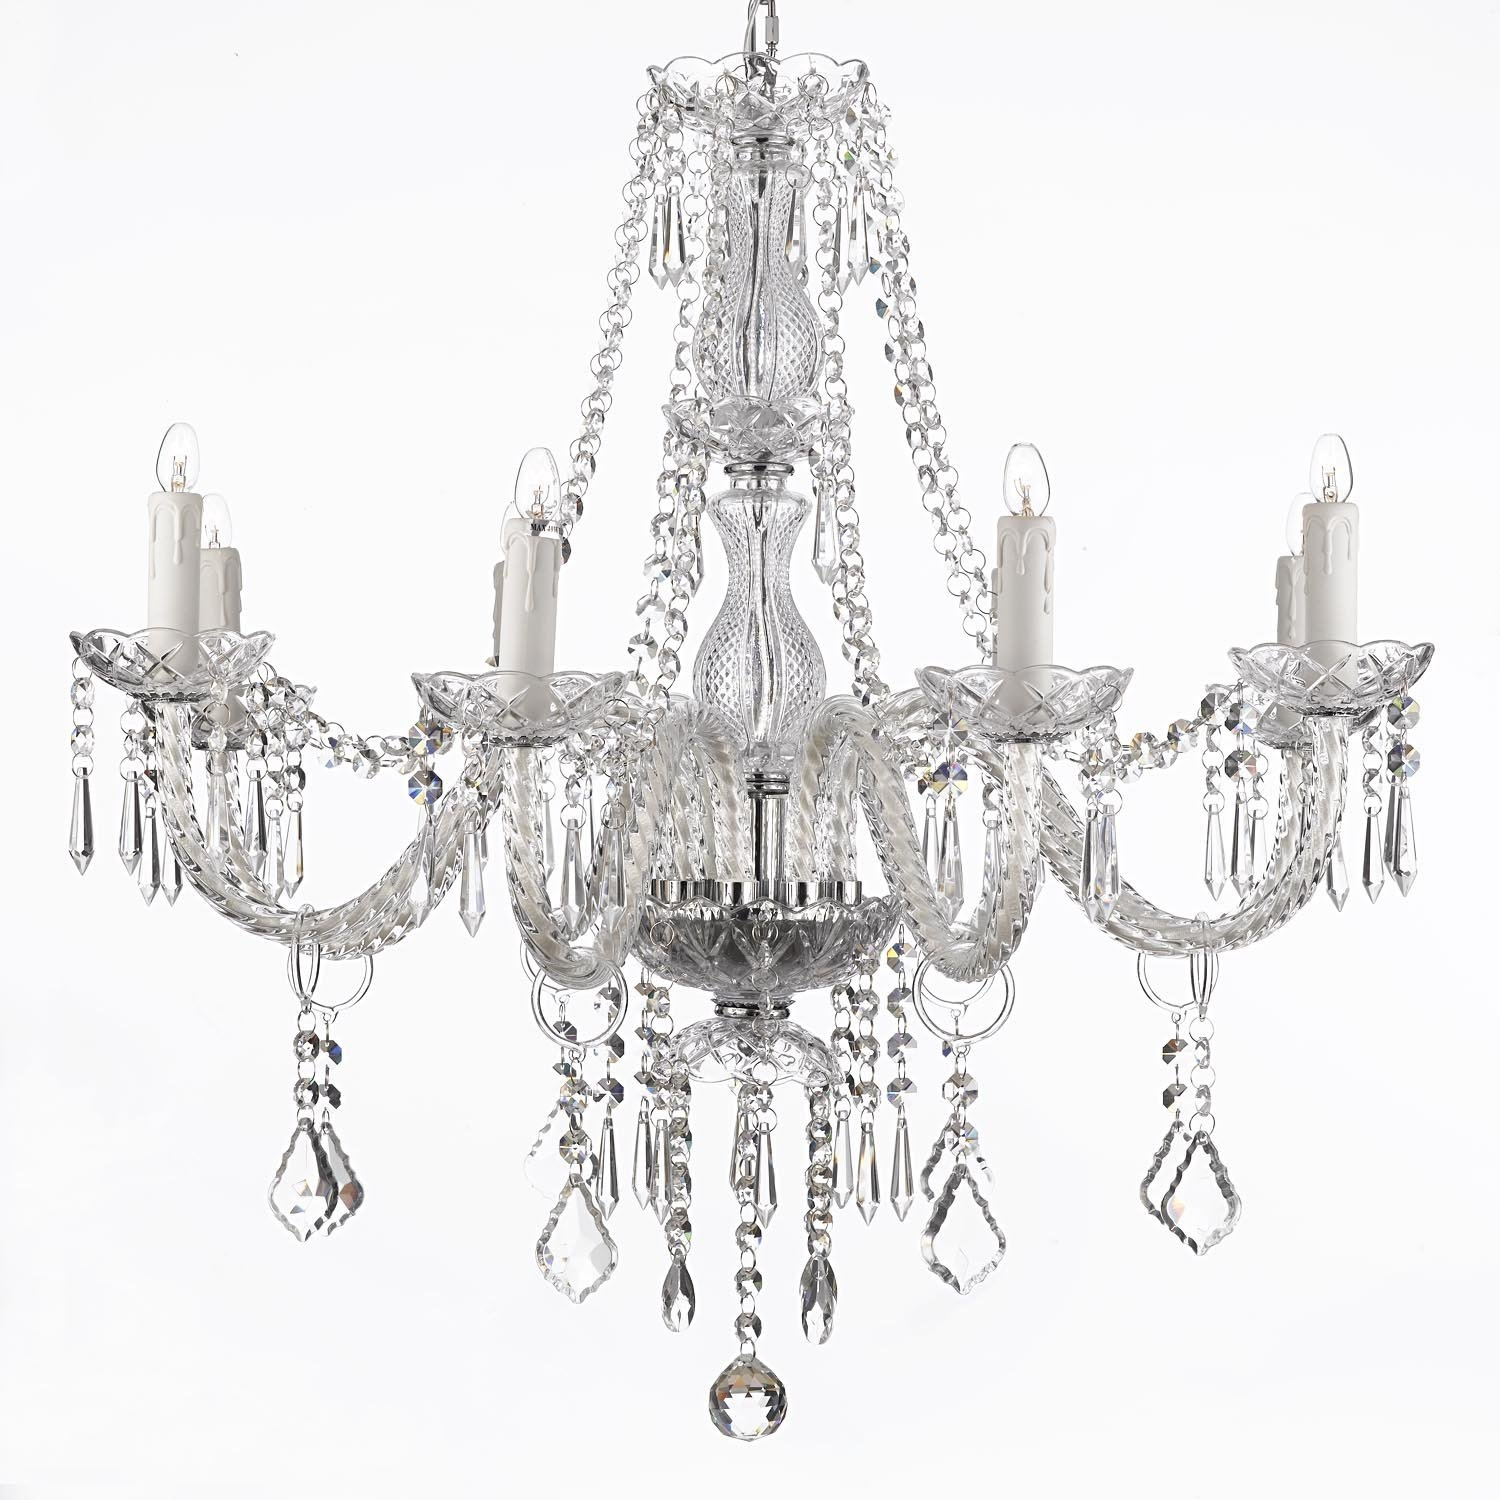 159 Crystal Chandelier Lighting 28ht X 28wd 8 Lights Fixture With Regard To Small Chandeliers For Low Ceilings (#1 of 12)